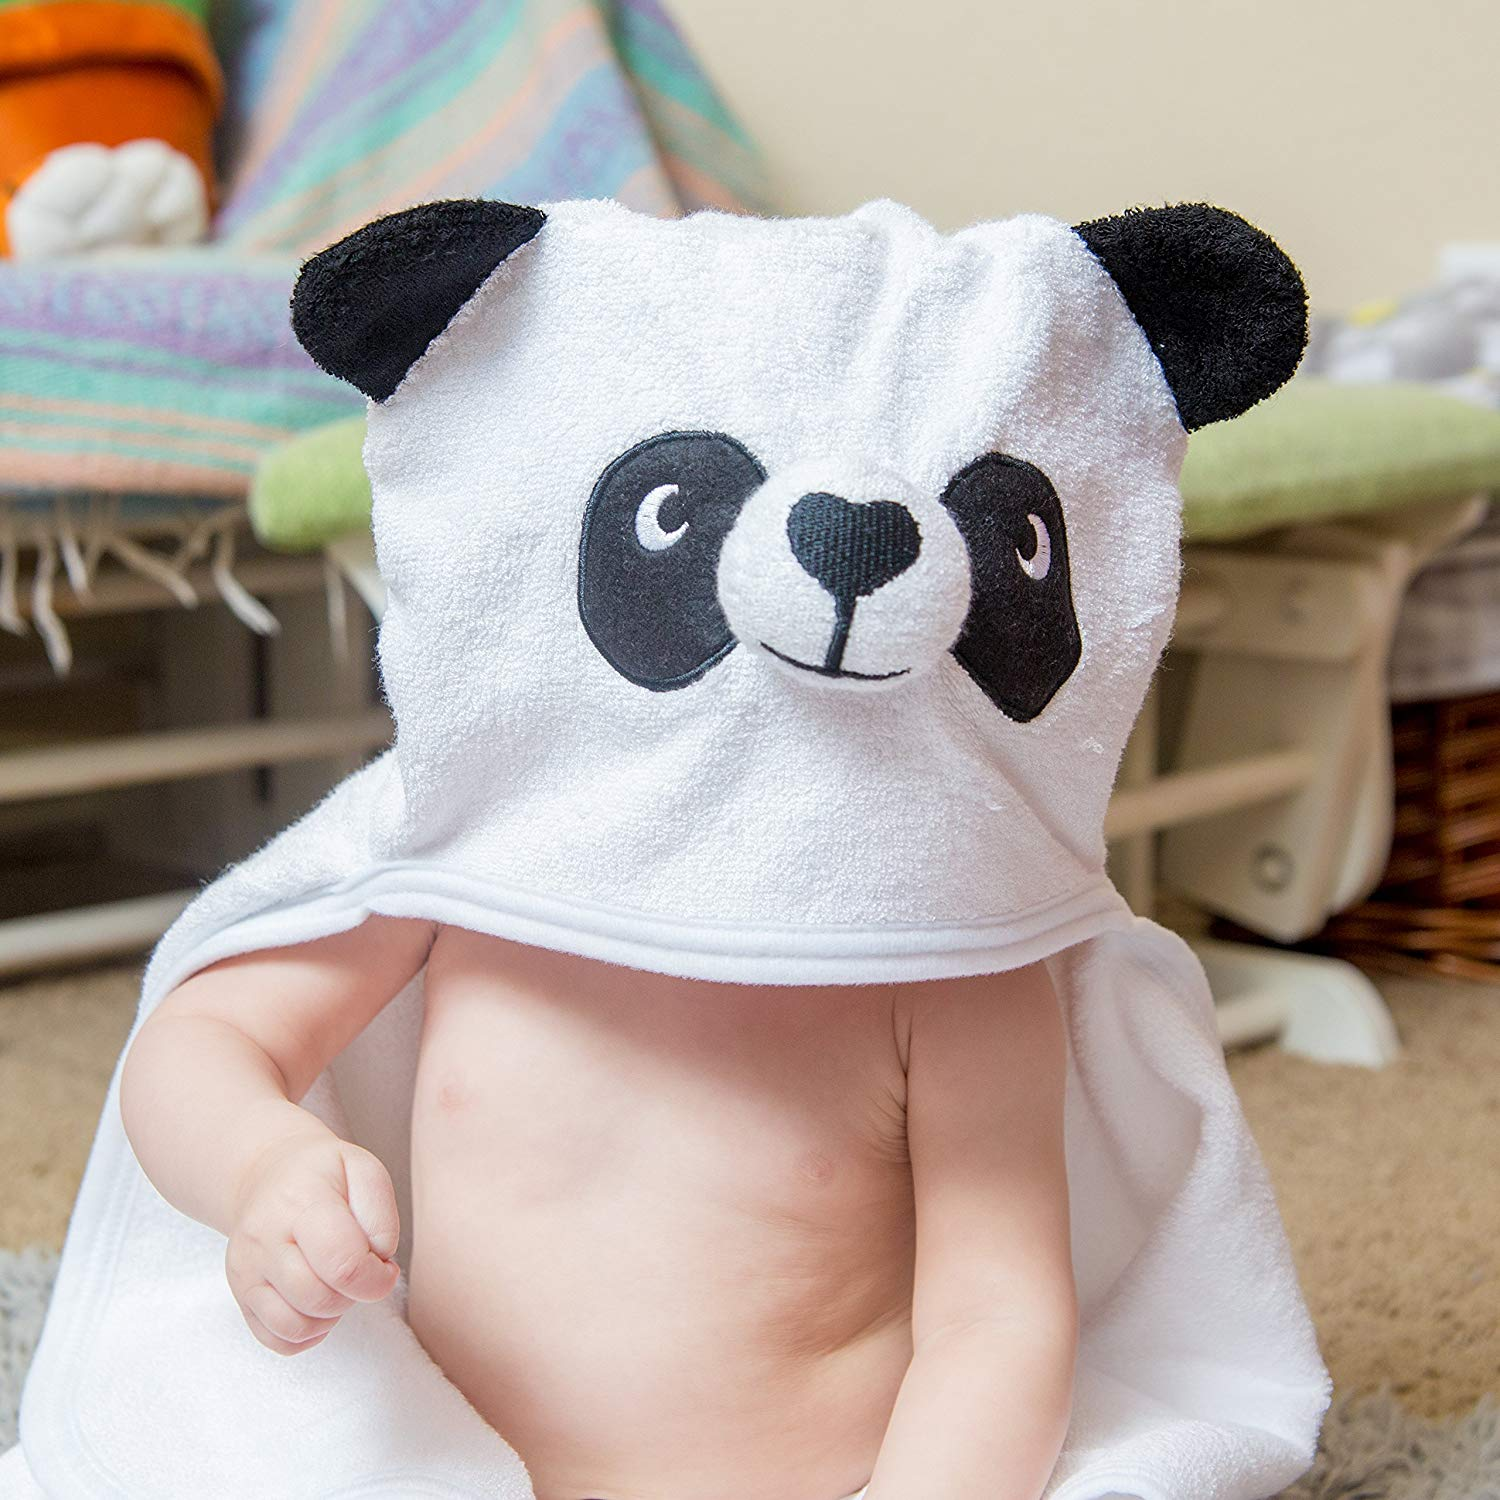 Bamboo Panda Hooded Baby Towel 100 Organic Unisex Towel Highly Absorbent And Super Soft Bath Towel For The Pool An B071G2C4Z9 9